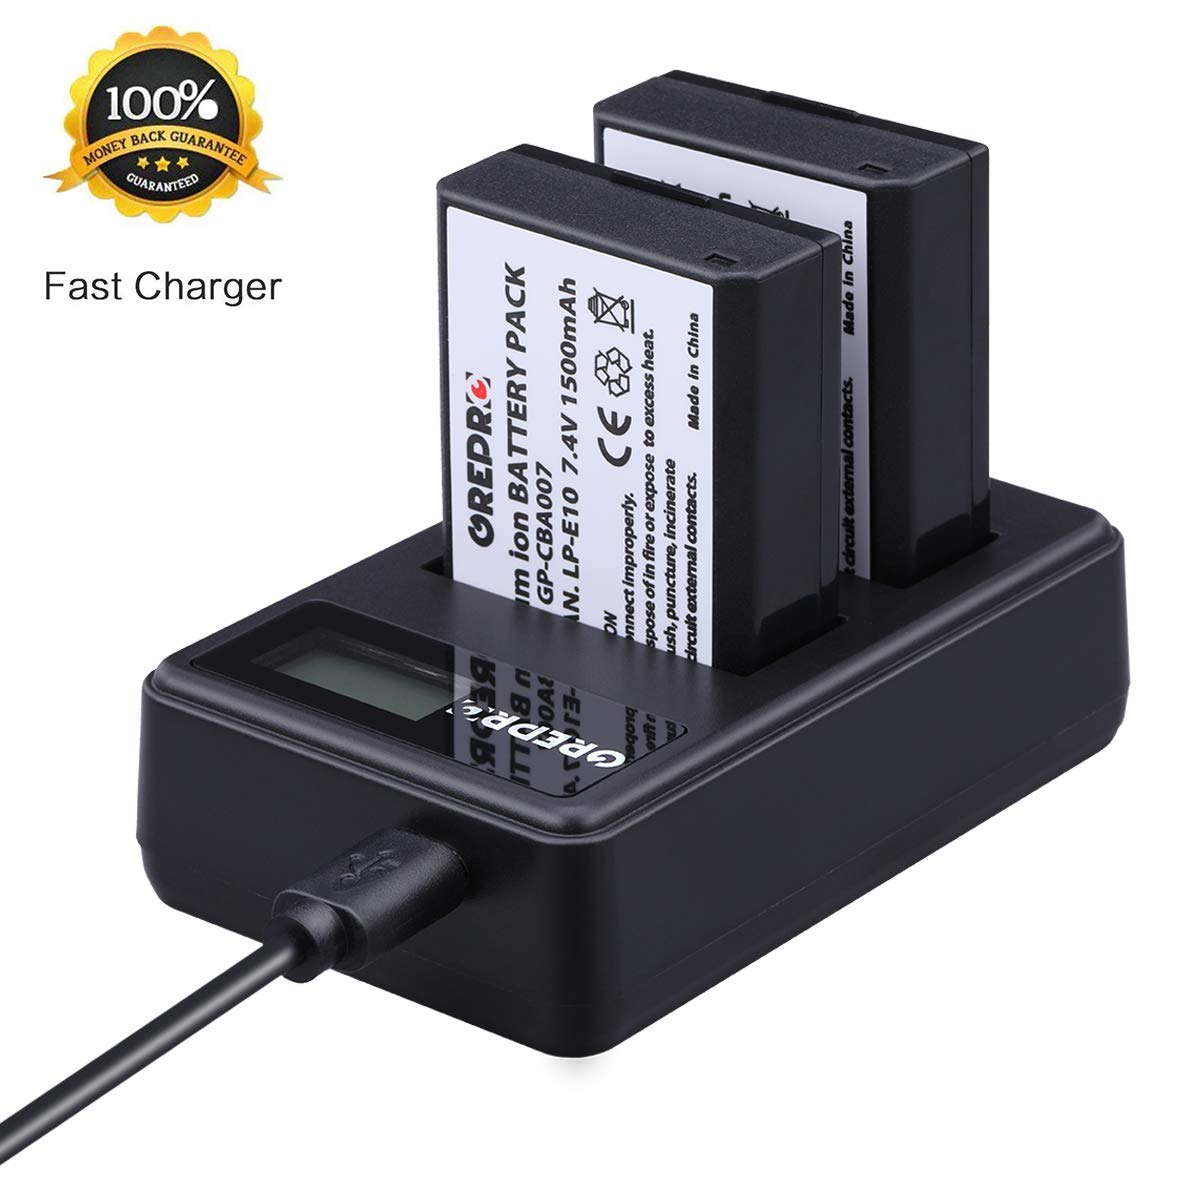 Grepro Replacement LP-E10 Camera Battery Charger LCD Quick Charger with Dual Slot Charging for Canon EOS Rebel T3 T5 T6 T7 Kiss X50 Kiss X70 EOS 1100D EOS 1200D EOS 1300D EOS 2000D and More.